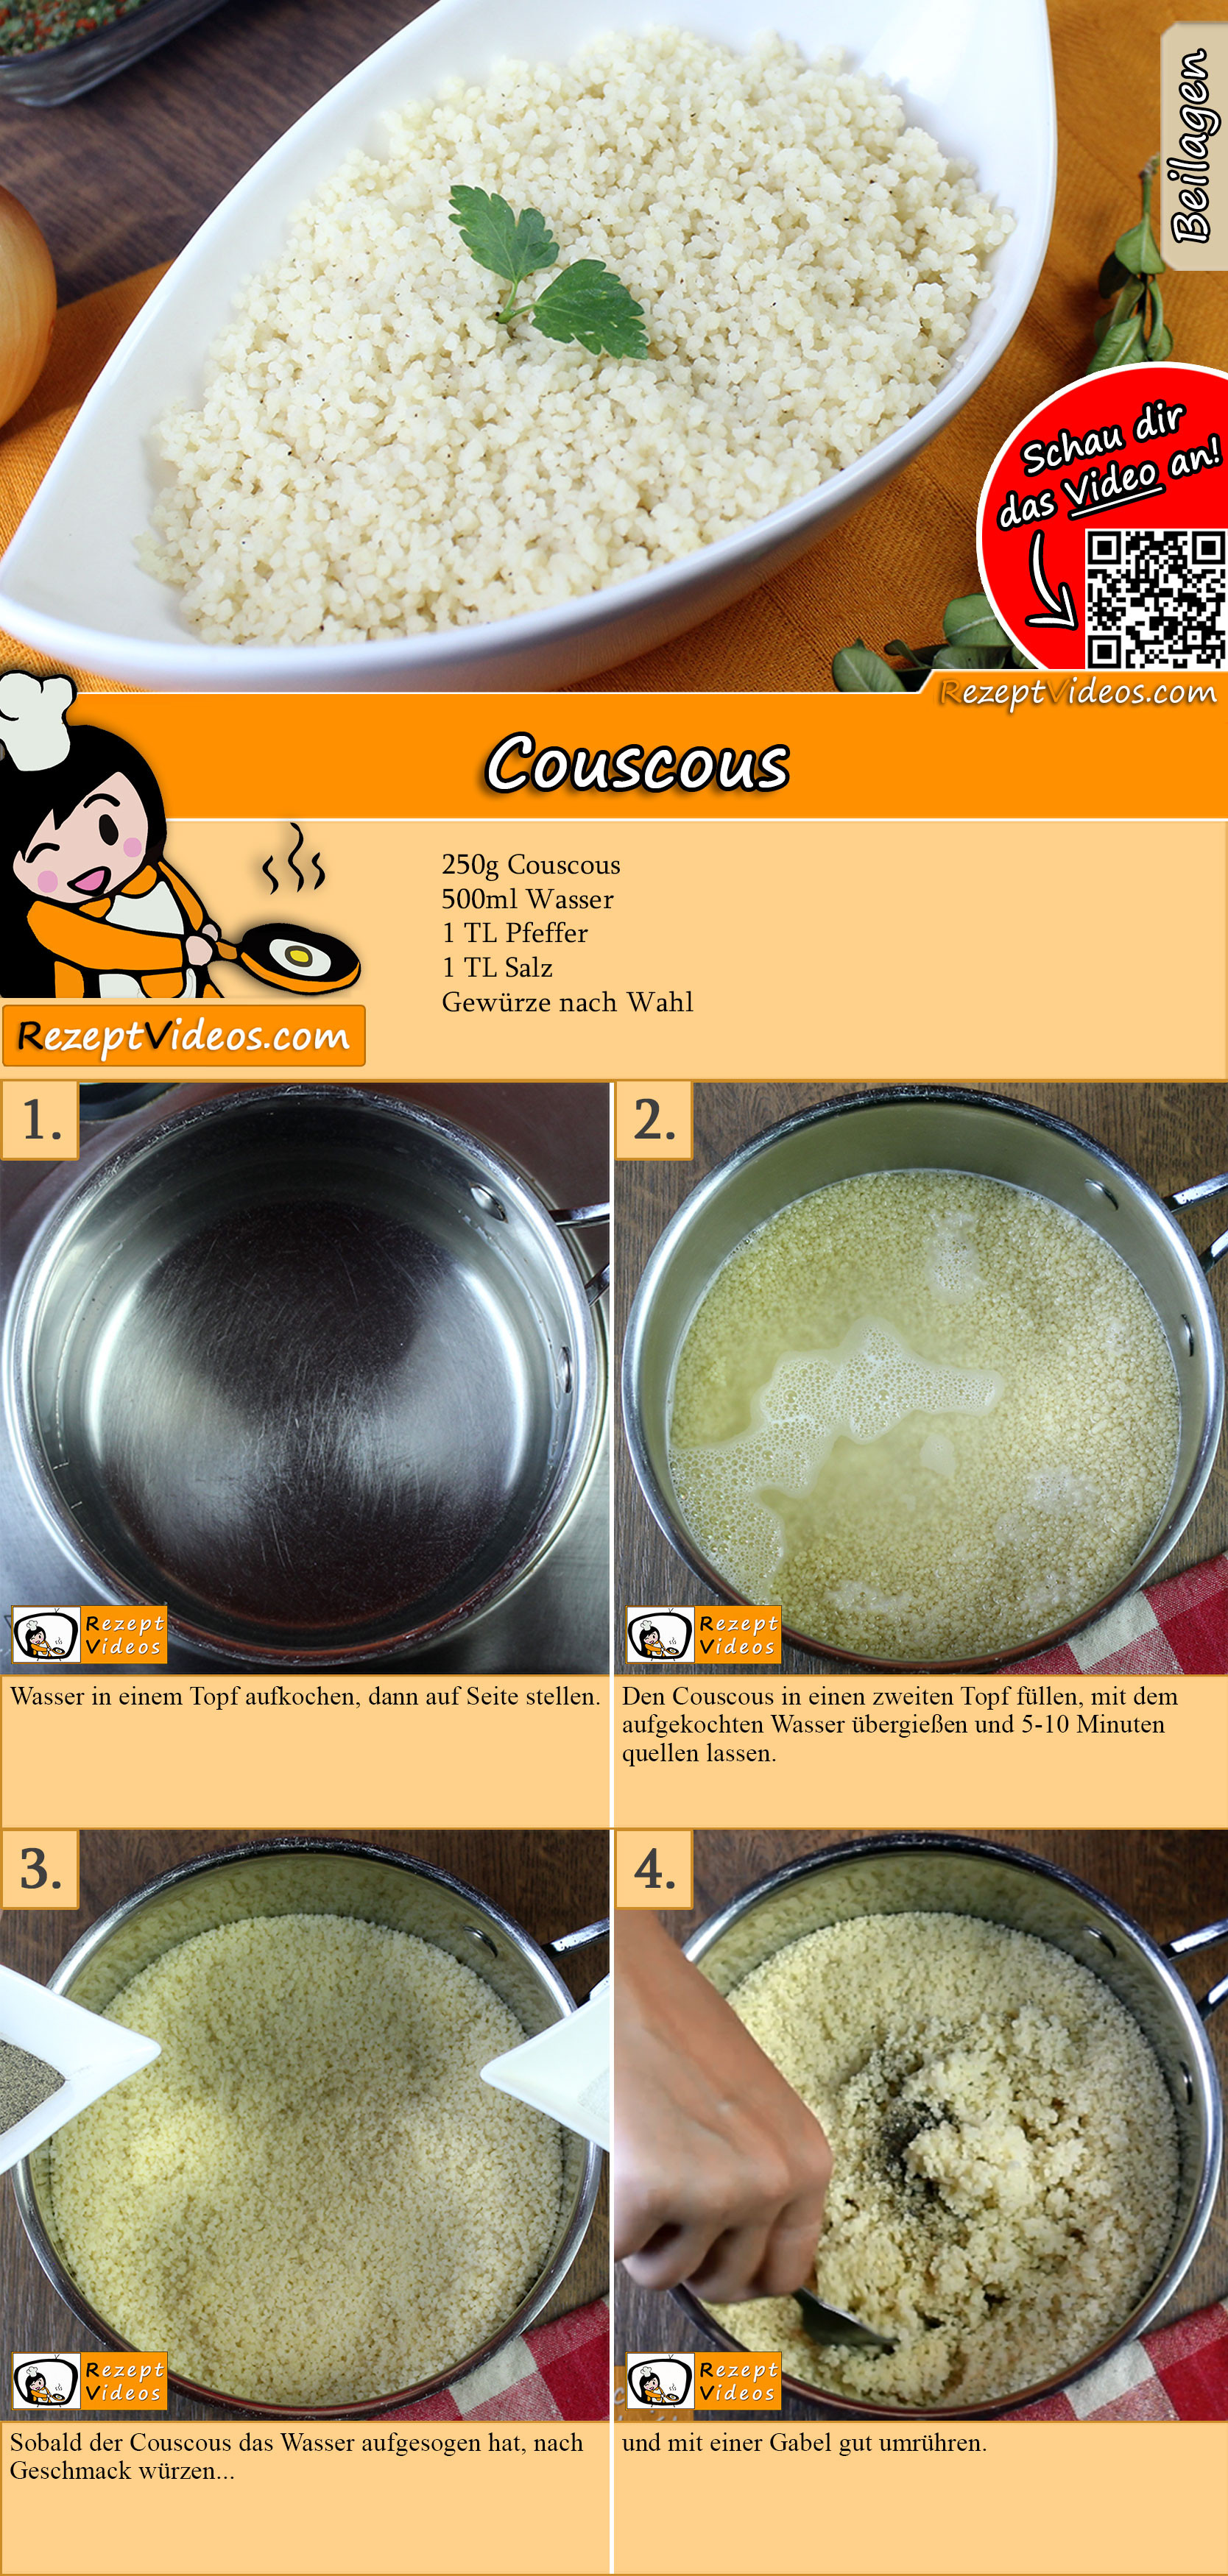 Couscous Rezept mit Video